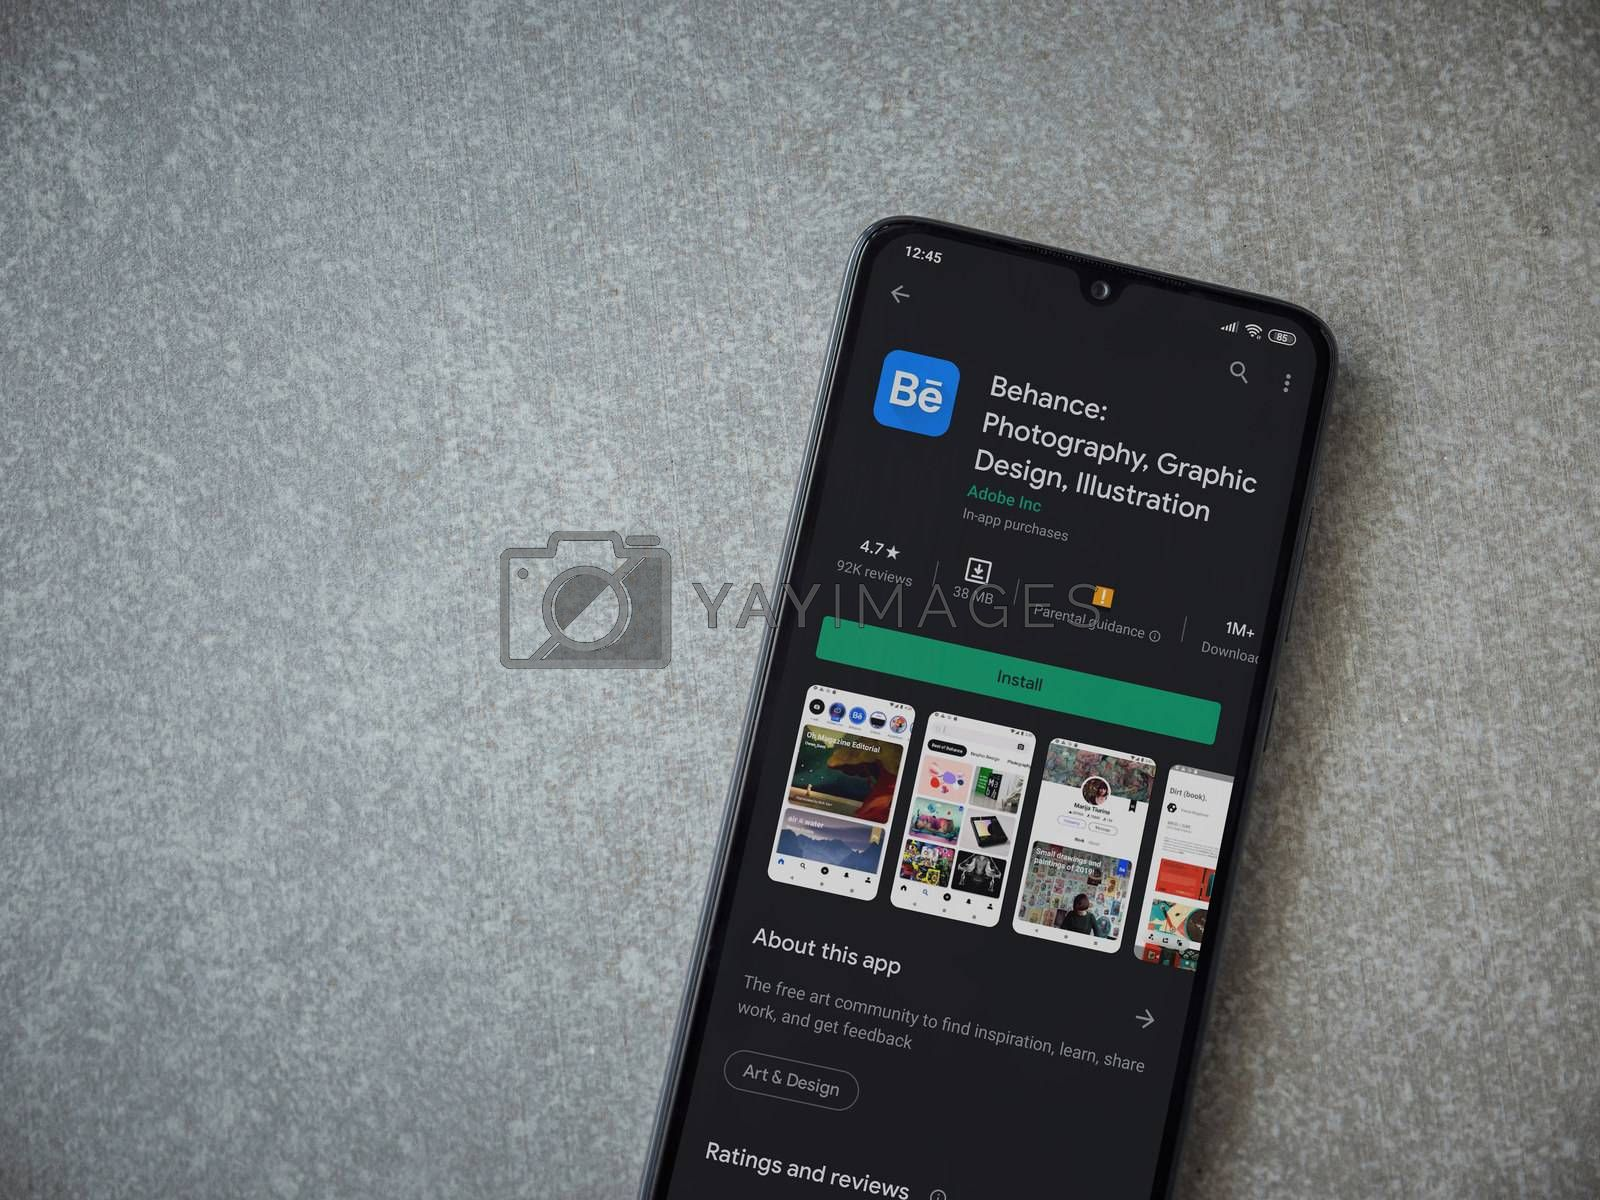 Lod, Israel - July 8, 2020: Adobe Behance app play store page on the display of a black mobile smartphone on ceramic stone background. Top view flat lay with copy space.